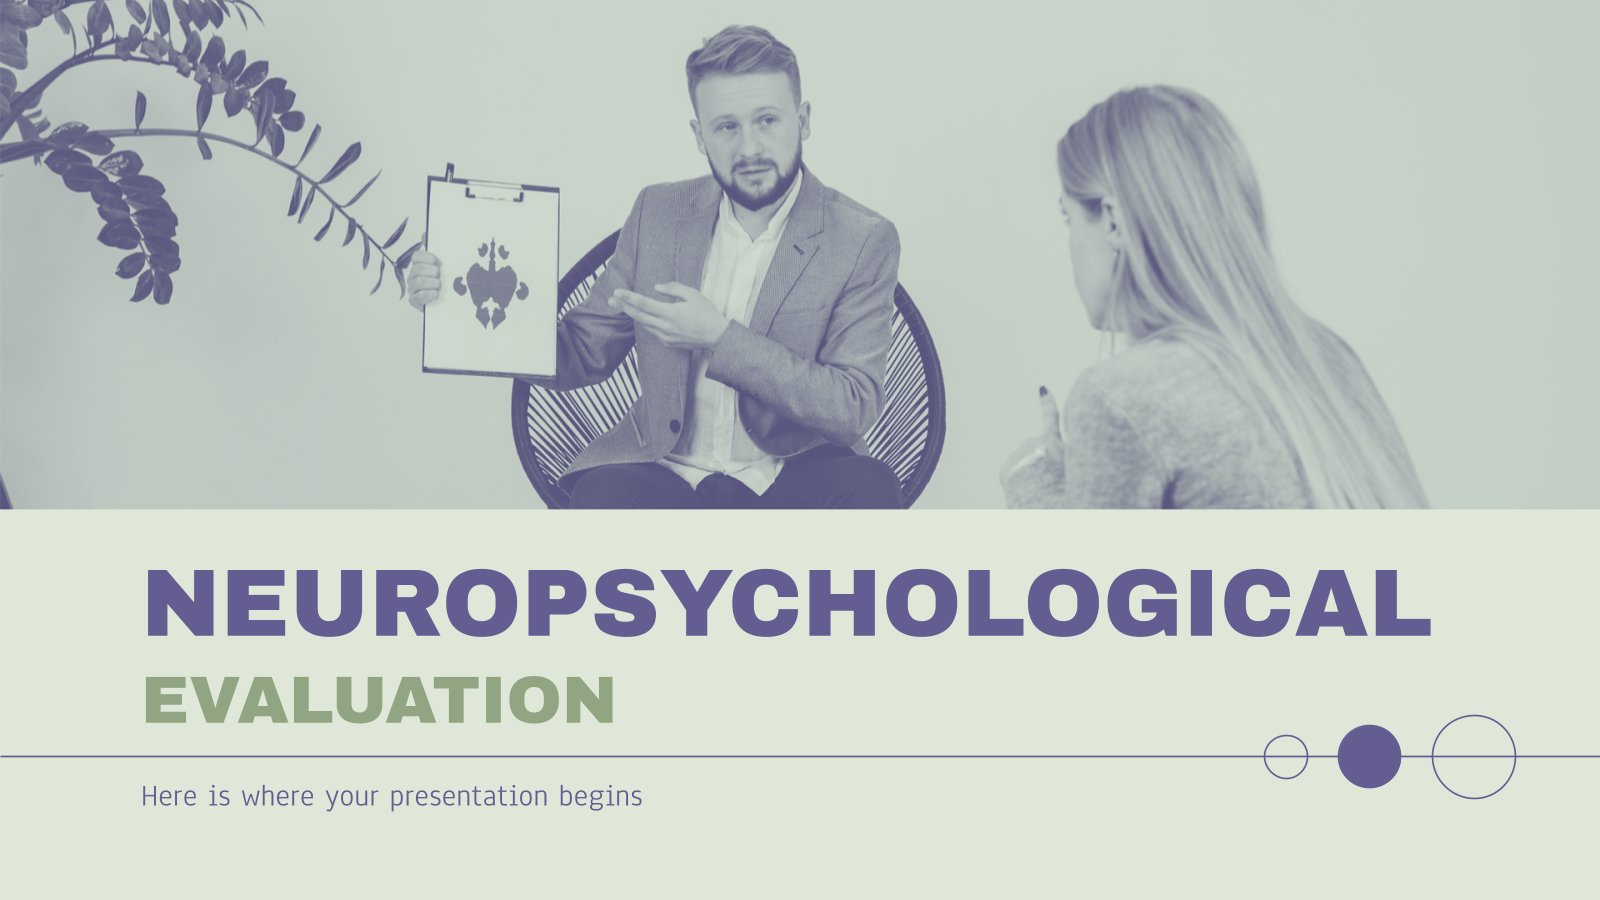 Neuropsychological Evaluation presentation template